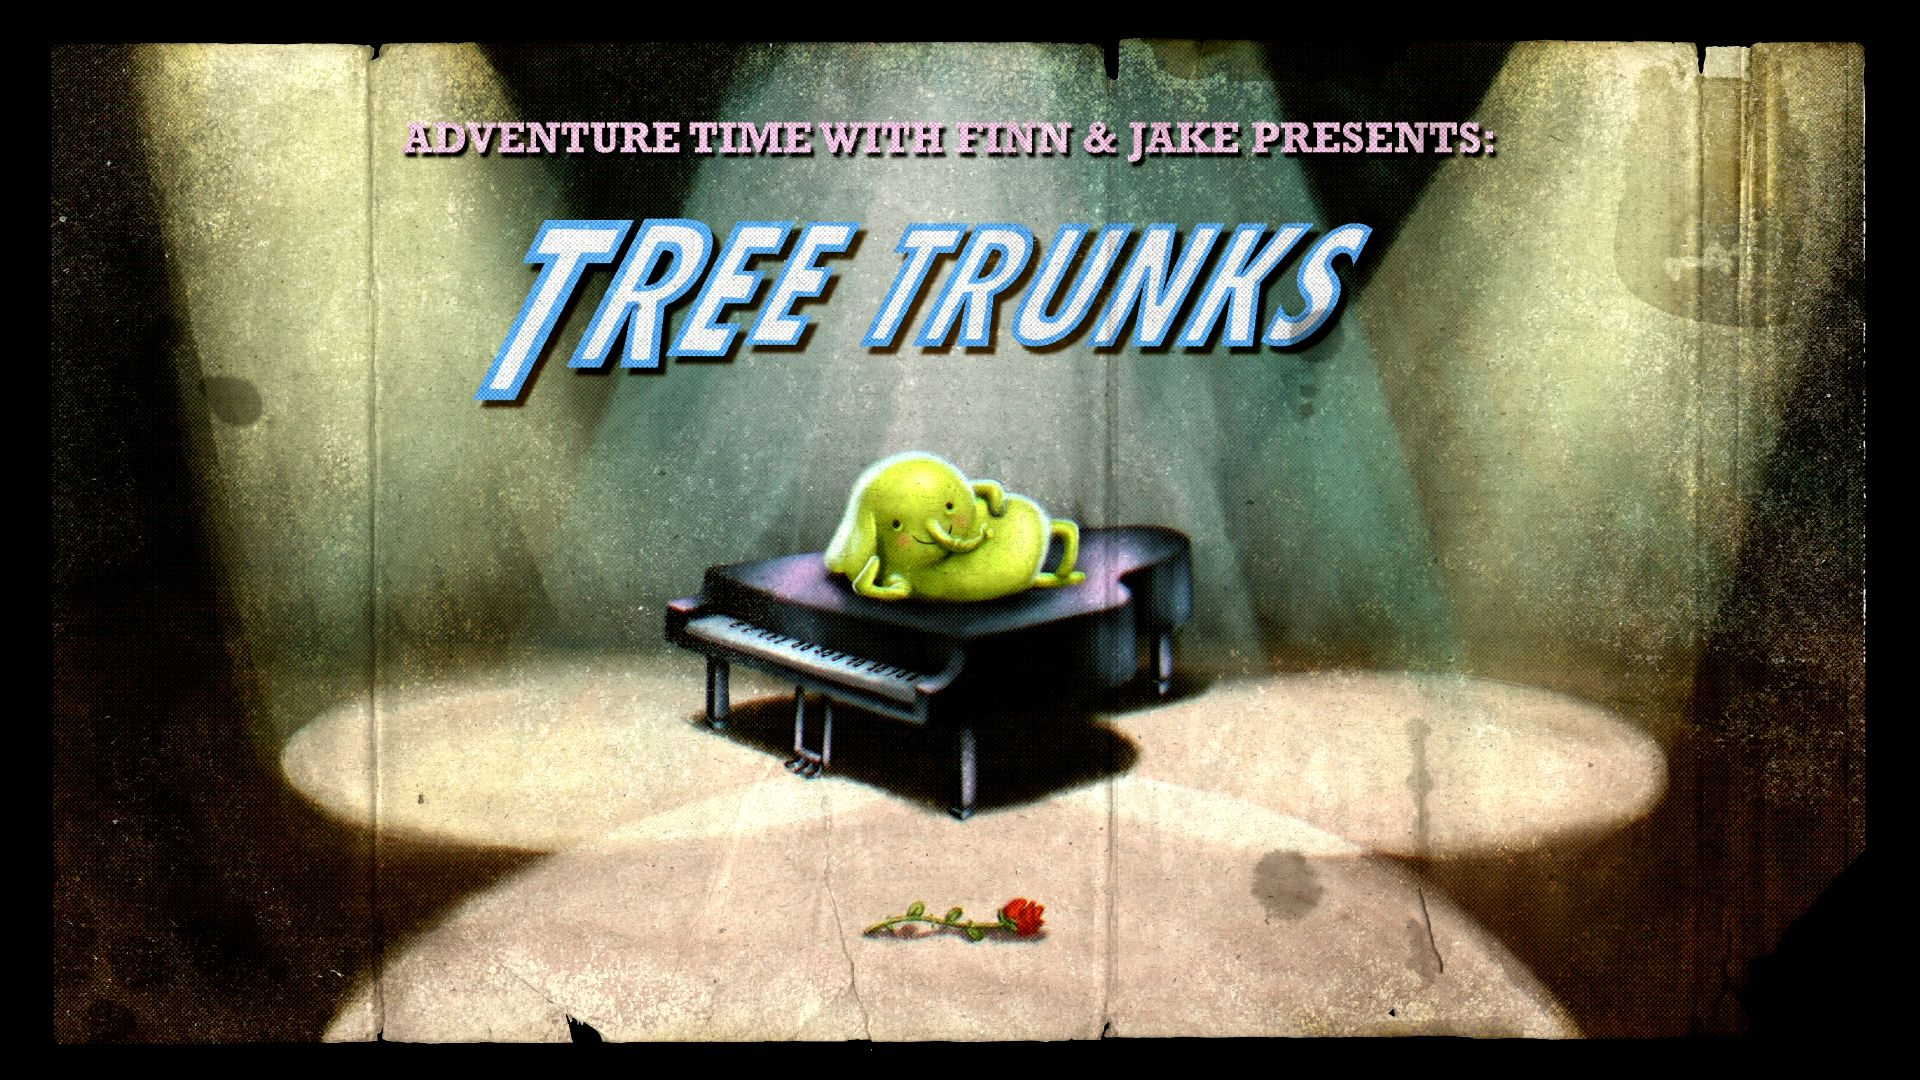 File:Titlecard S1E4 treetrunks.jpg